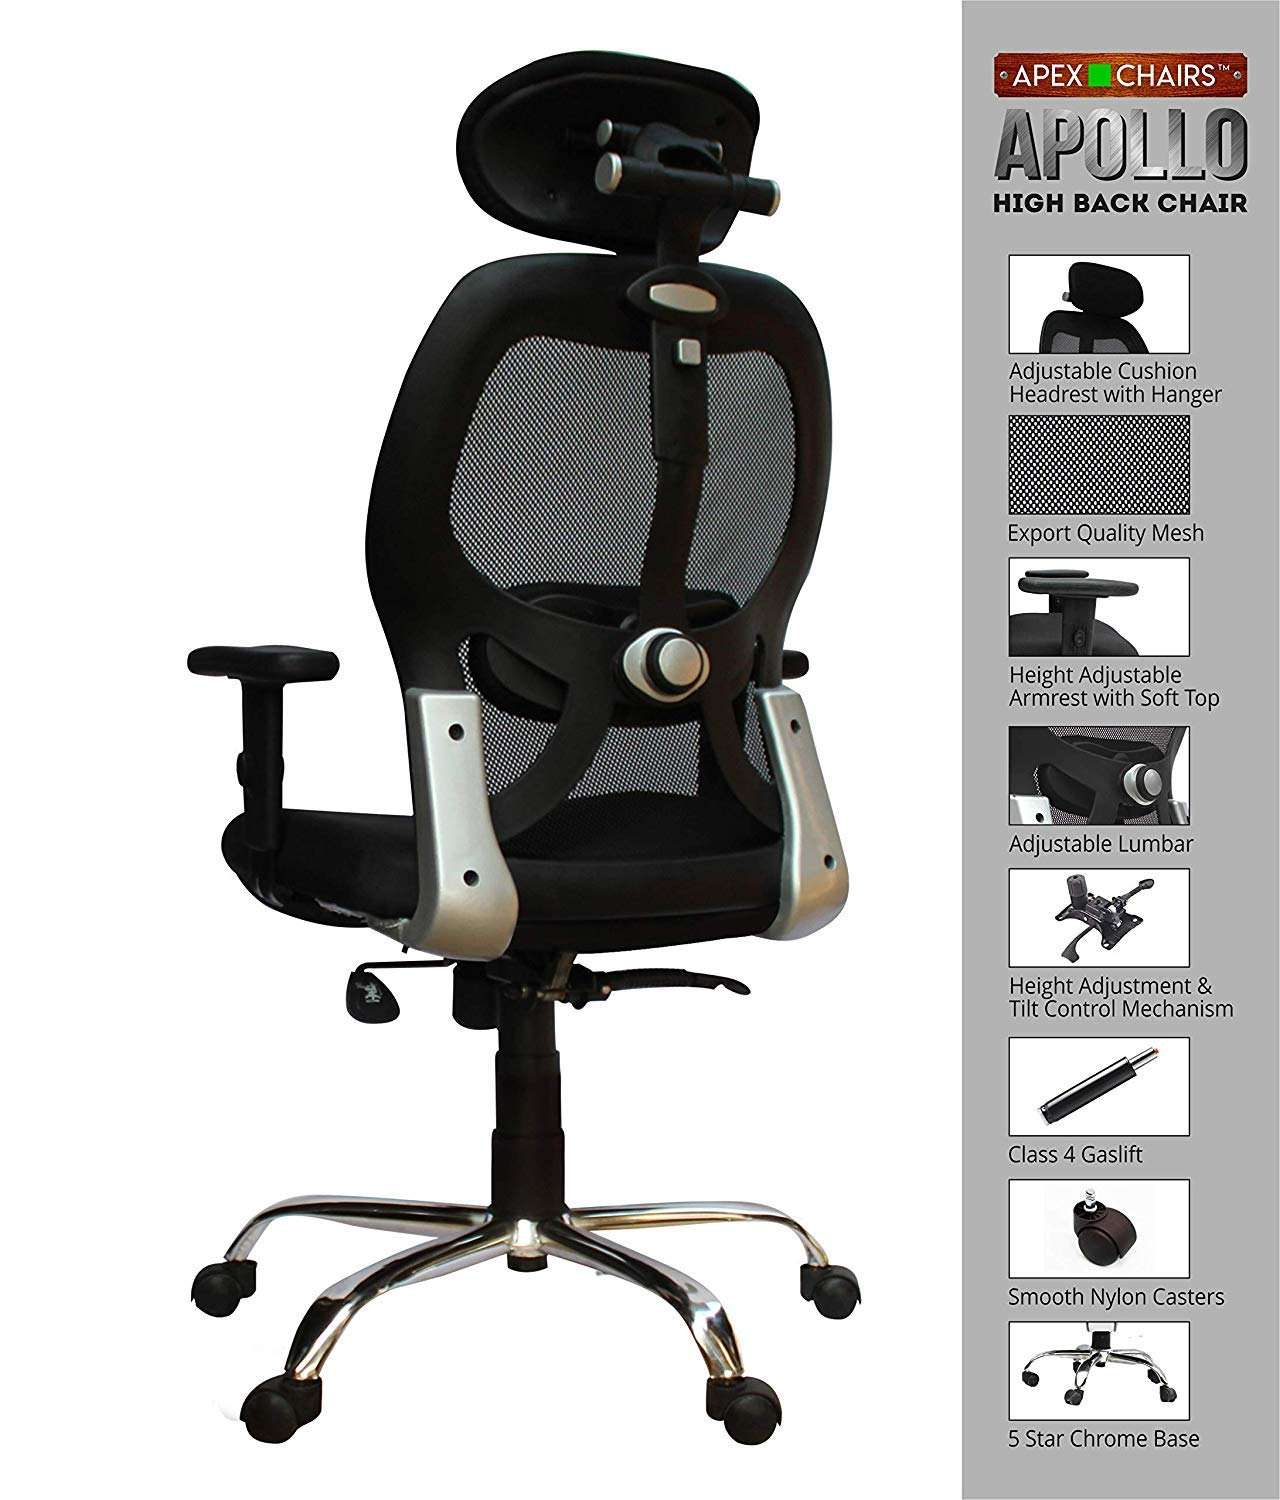 SAVYA HOME APEX Chairs Apollo Chrome Base High Back Office Chair Adjustable Arms